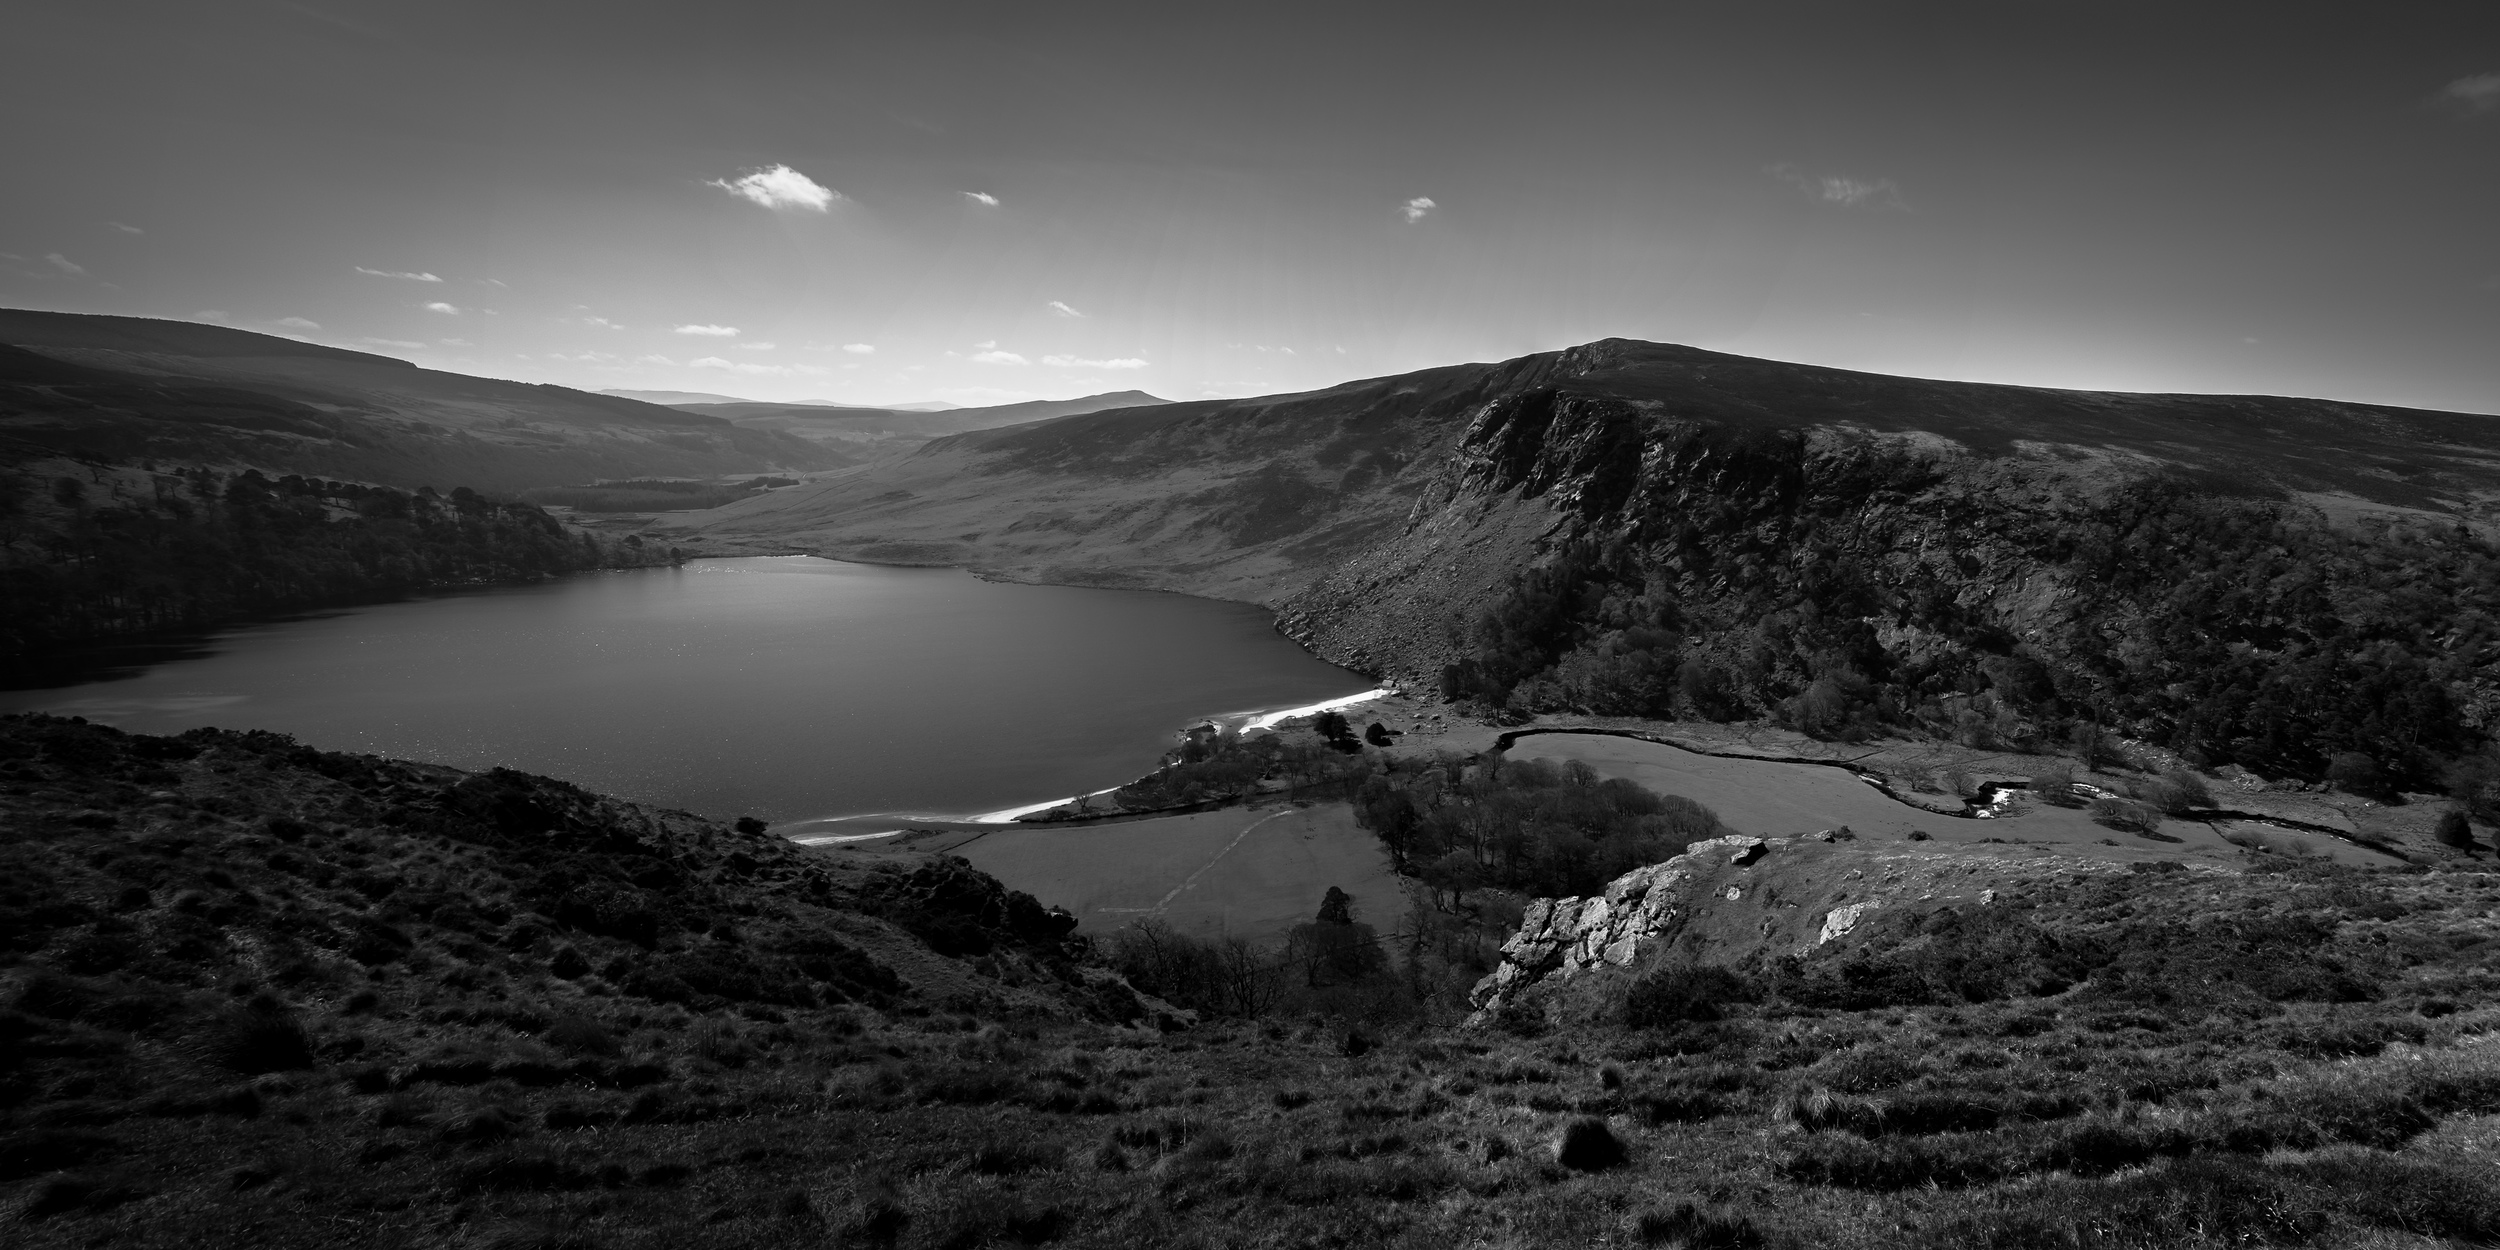 Driving thru the Wicklow Mountains National Park